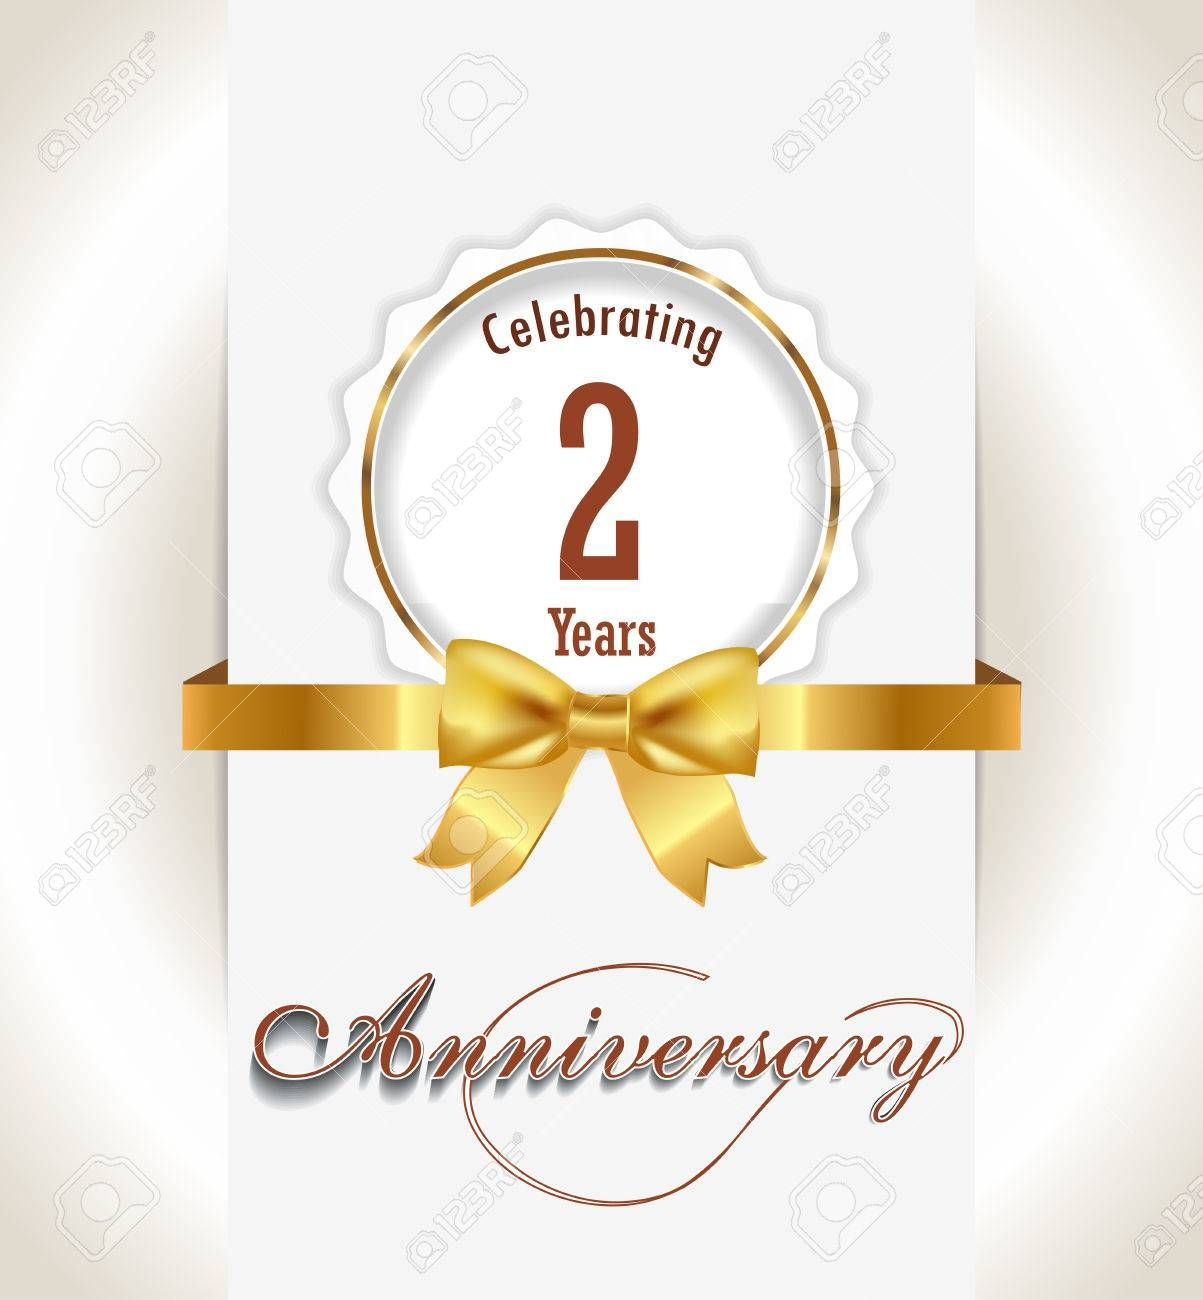 2nd Anniversary Background 2 Years Celebration Invitation Card 2nd Anniversary Card Des Anniversary Cards For Wife Anniversary Cards Anniversary Greeting Cards